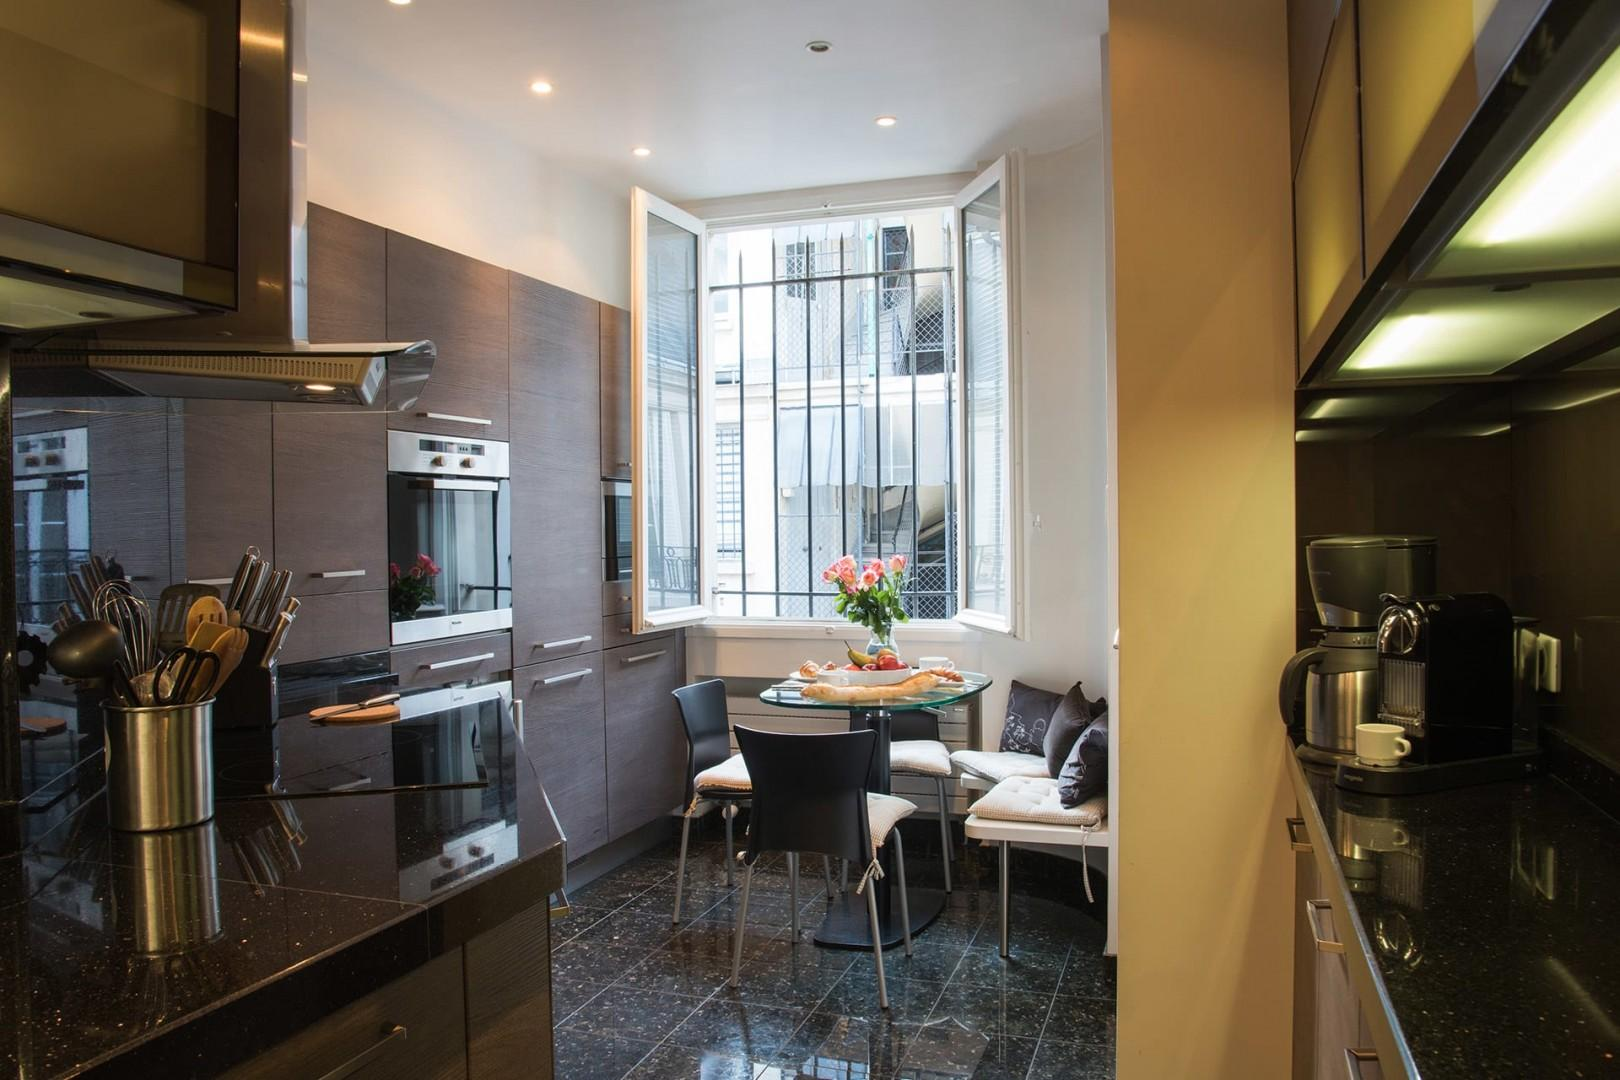 The fully equipped kitchen has a dishwasher and Nespresso machine.